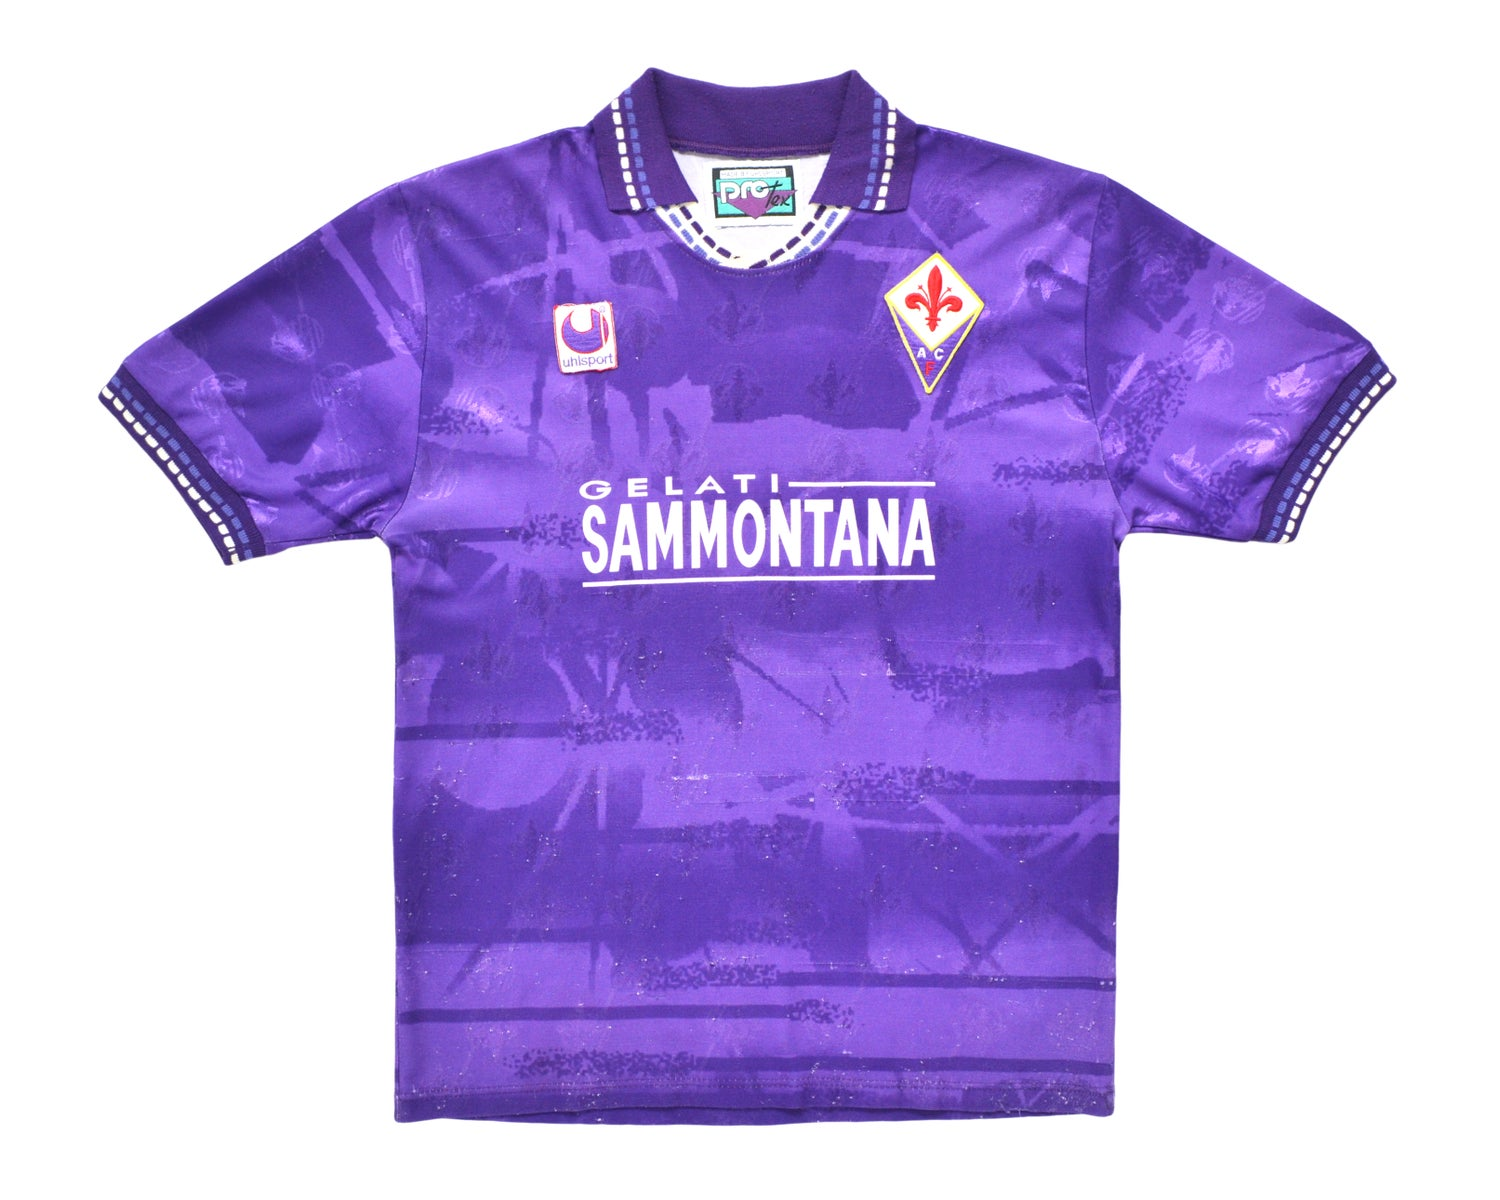 Image of 1994-95 Uhlsport Fiorentina Home Shirt  'Batistuta 9' L